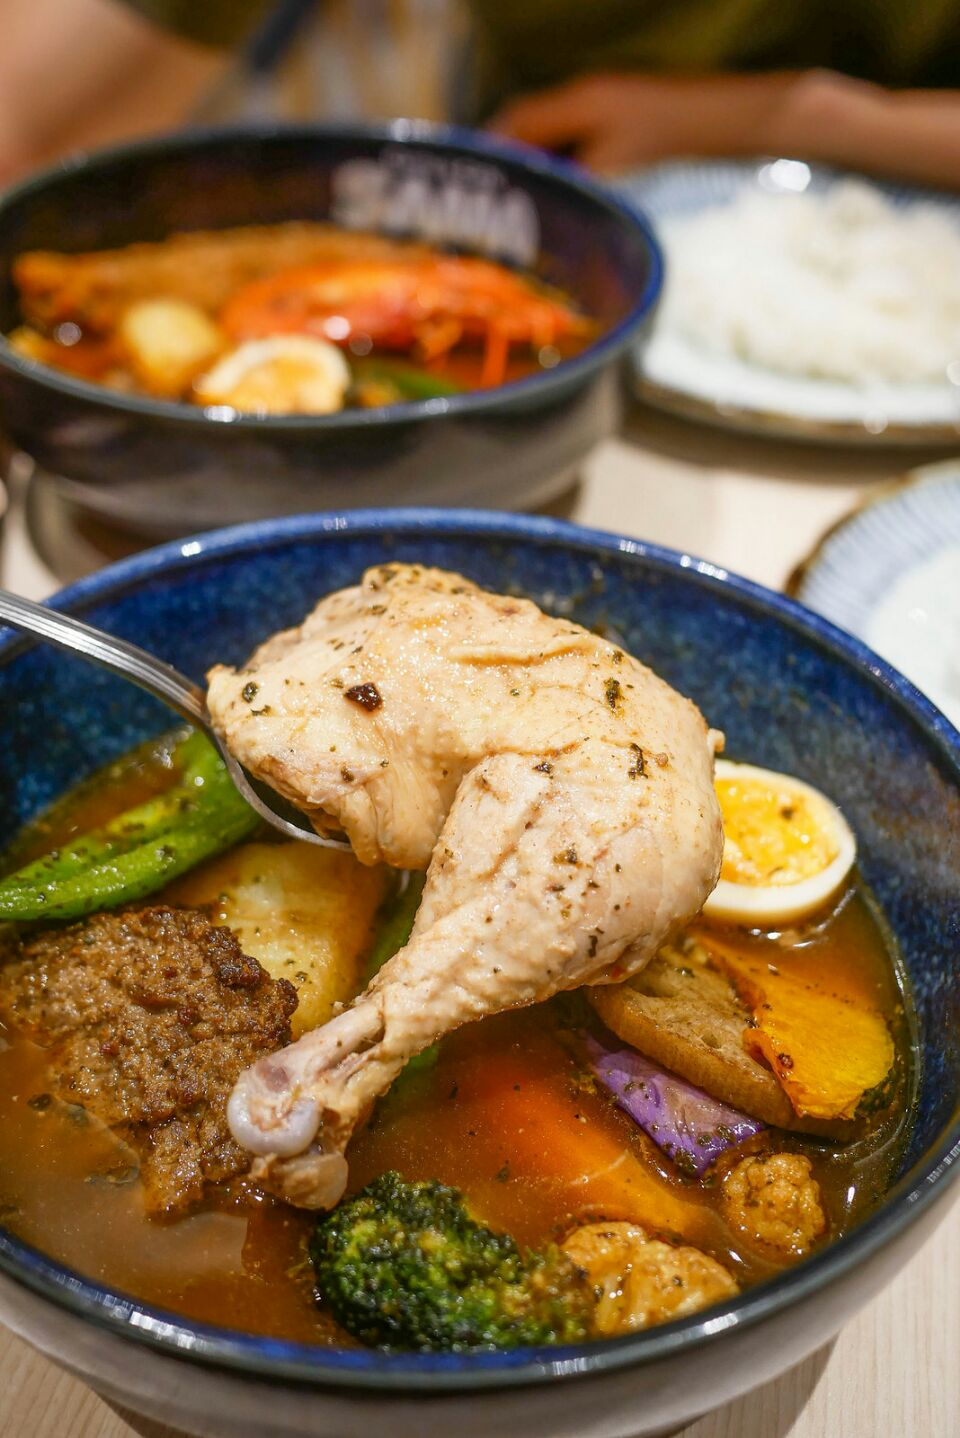 Delicious Sapporo-Style Soup Curry from Japan